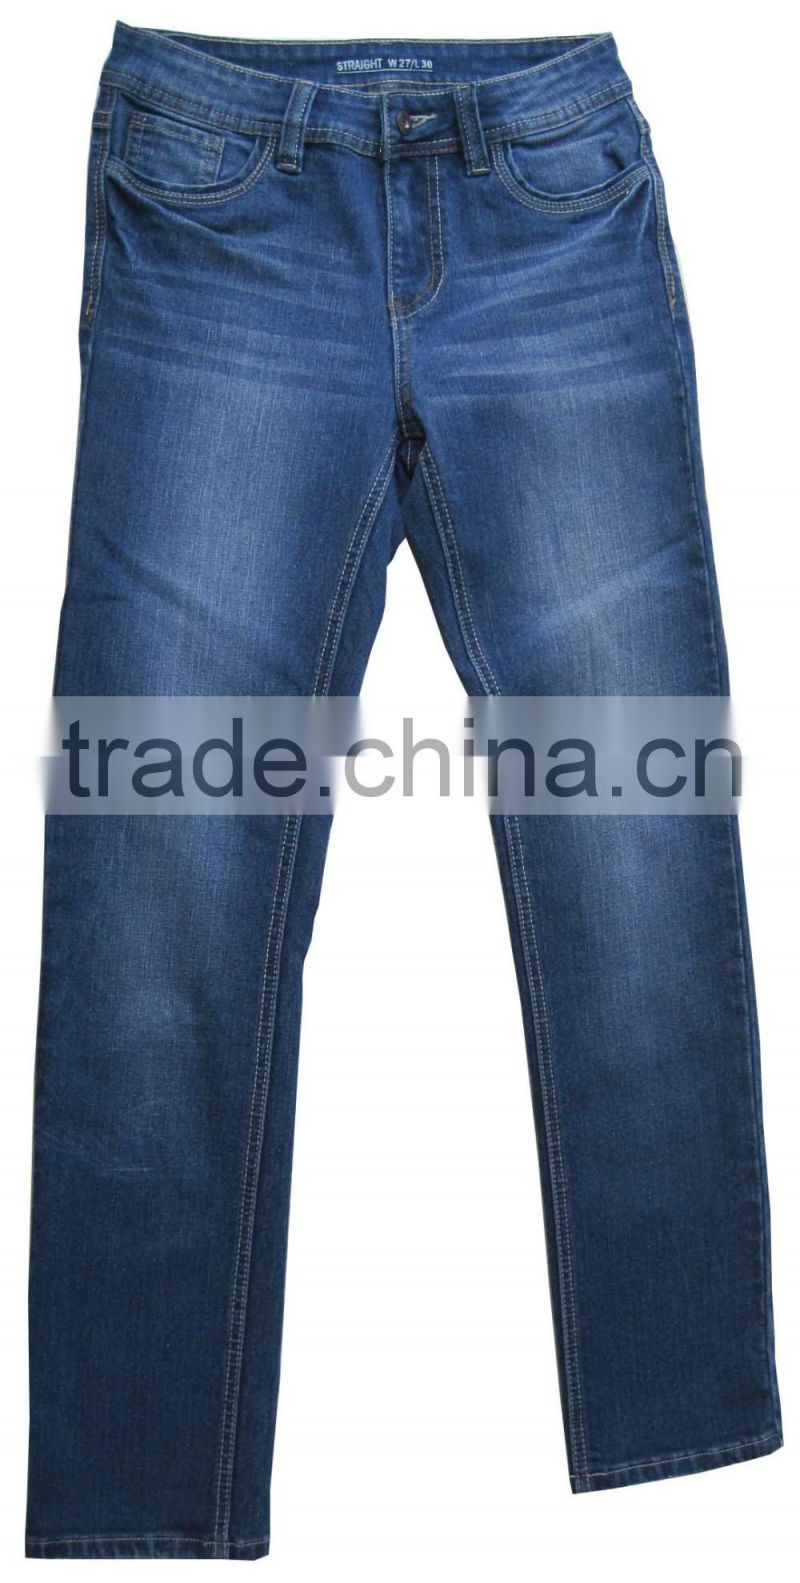 Female style women basic 5 pockets straight jeans ladies denim blue skinny jeans manufacturer